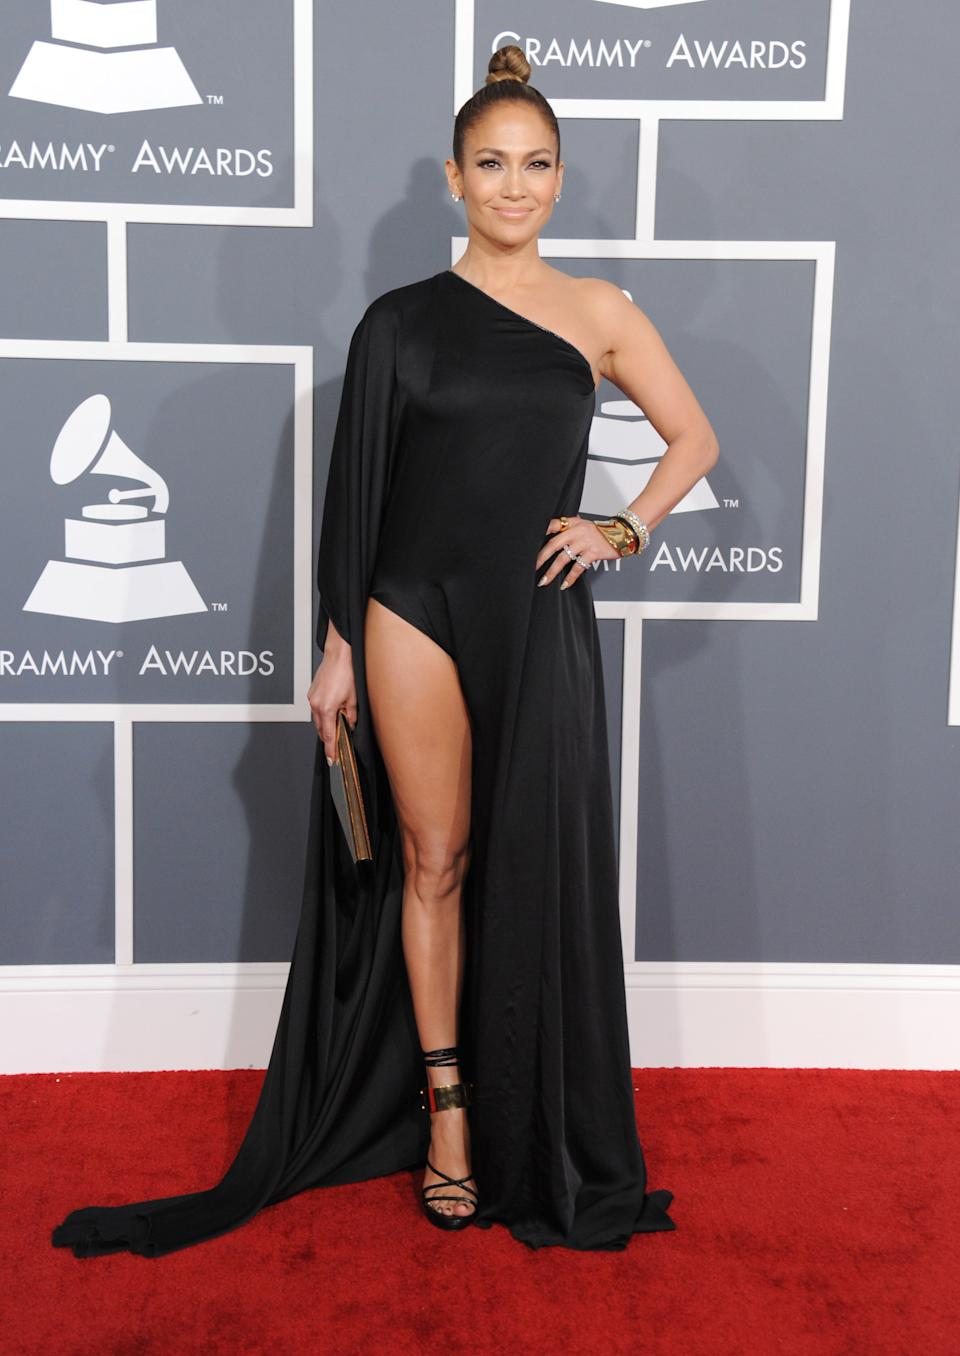 Jennifer Lopez arrives at the 55th annual Grammy Awards on Sunday, Feb. 10, 2013, in Los Angeles.  (Photo by Jordan Strauss/Invision/AP)